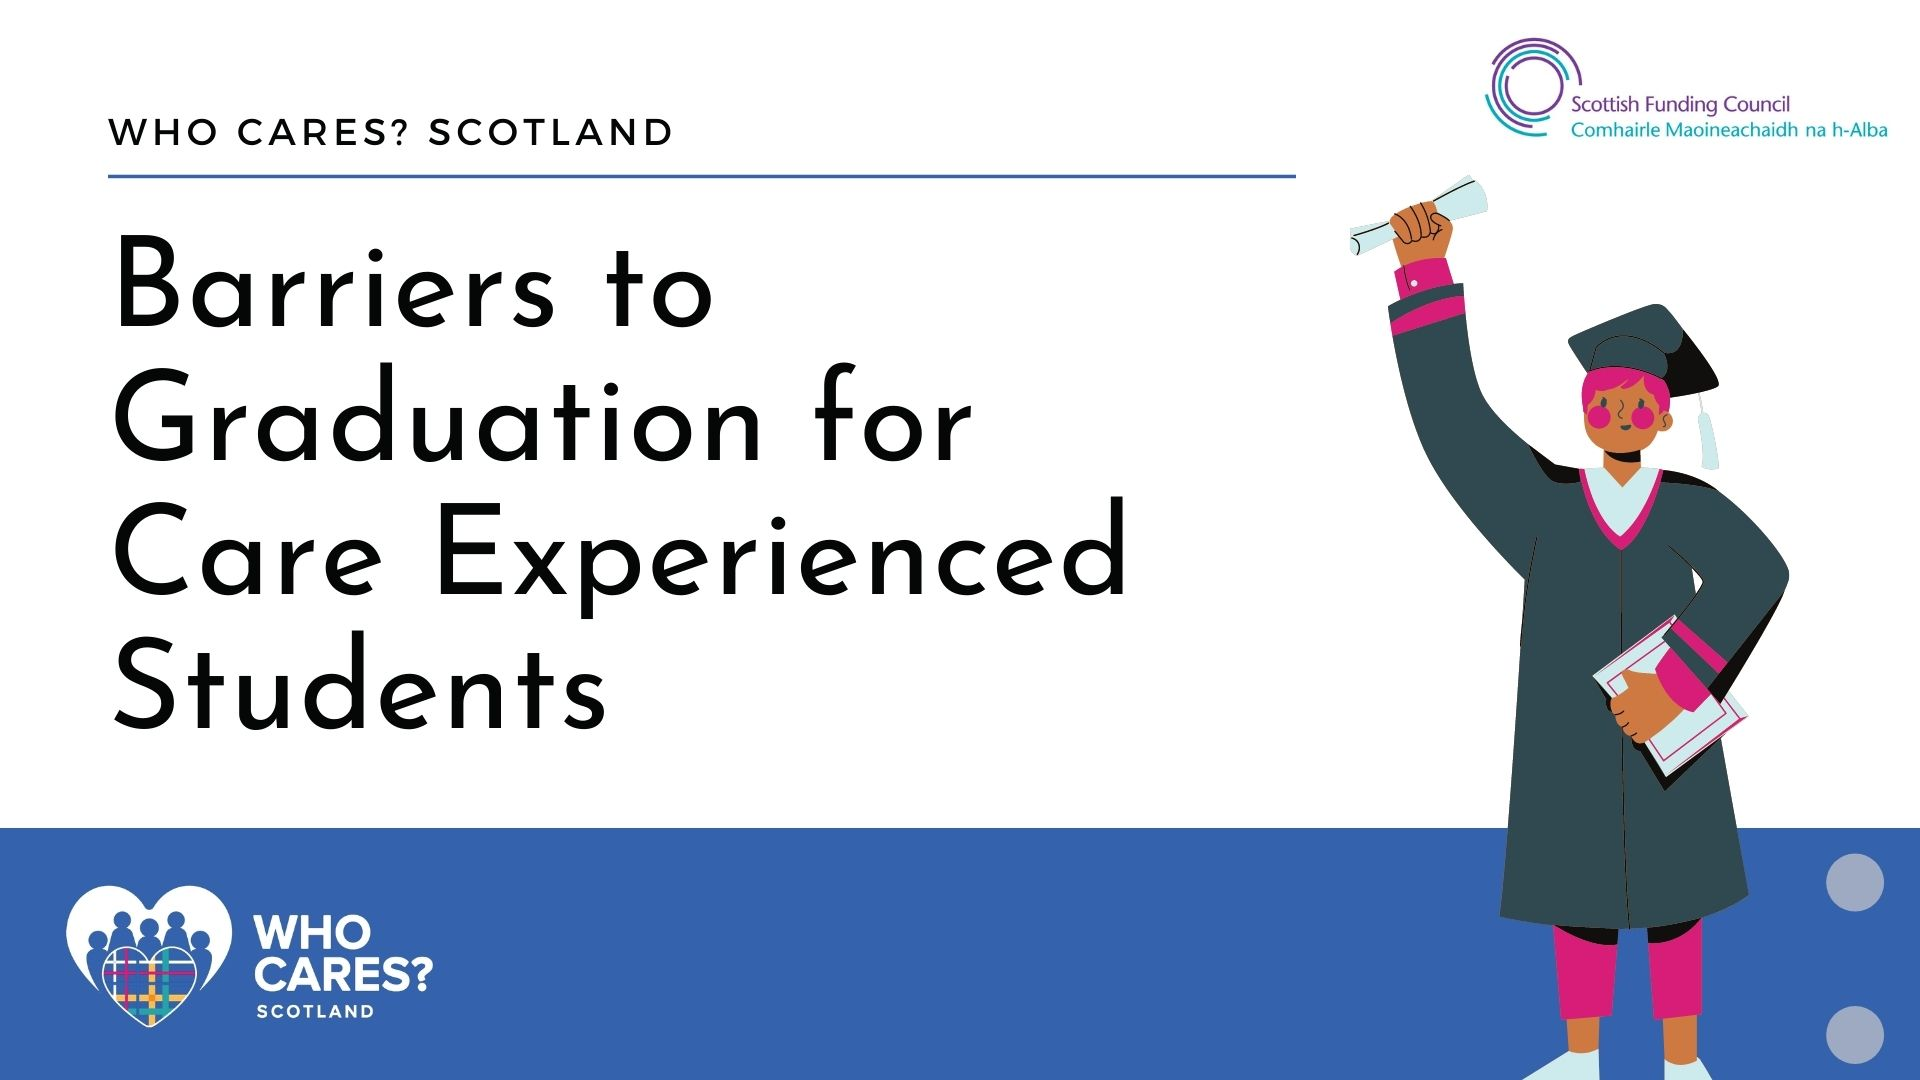 Barriers to Graduation for Care Experienced Students